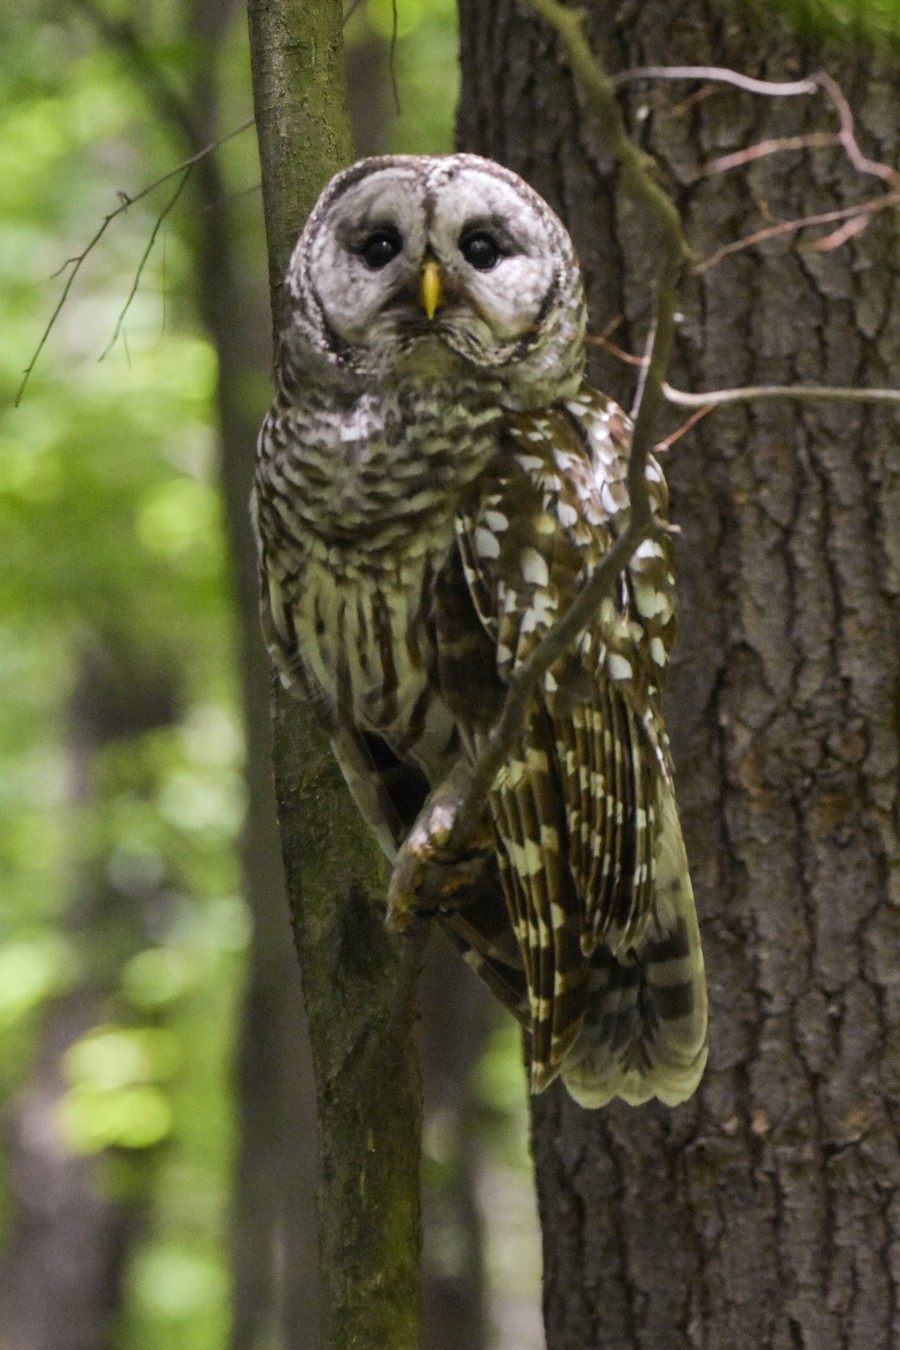 Female Barred Owl perched in tree